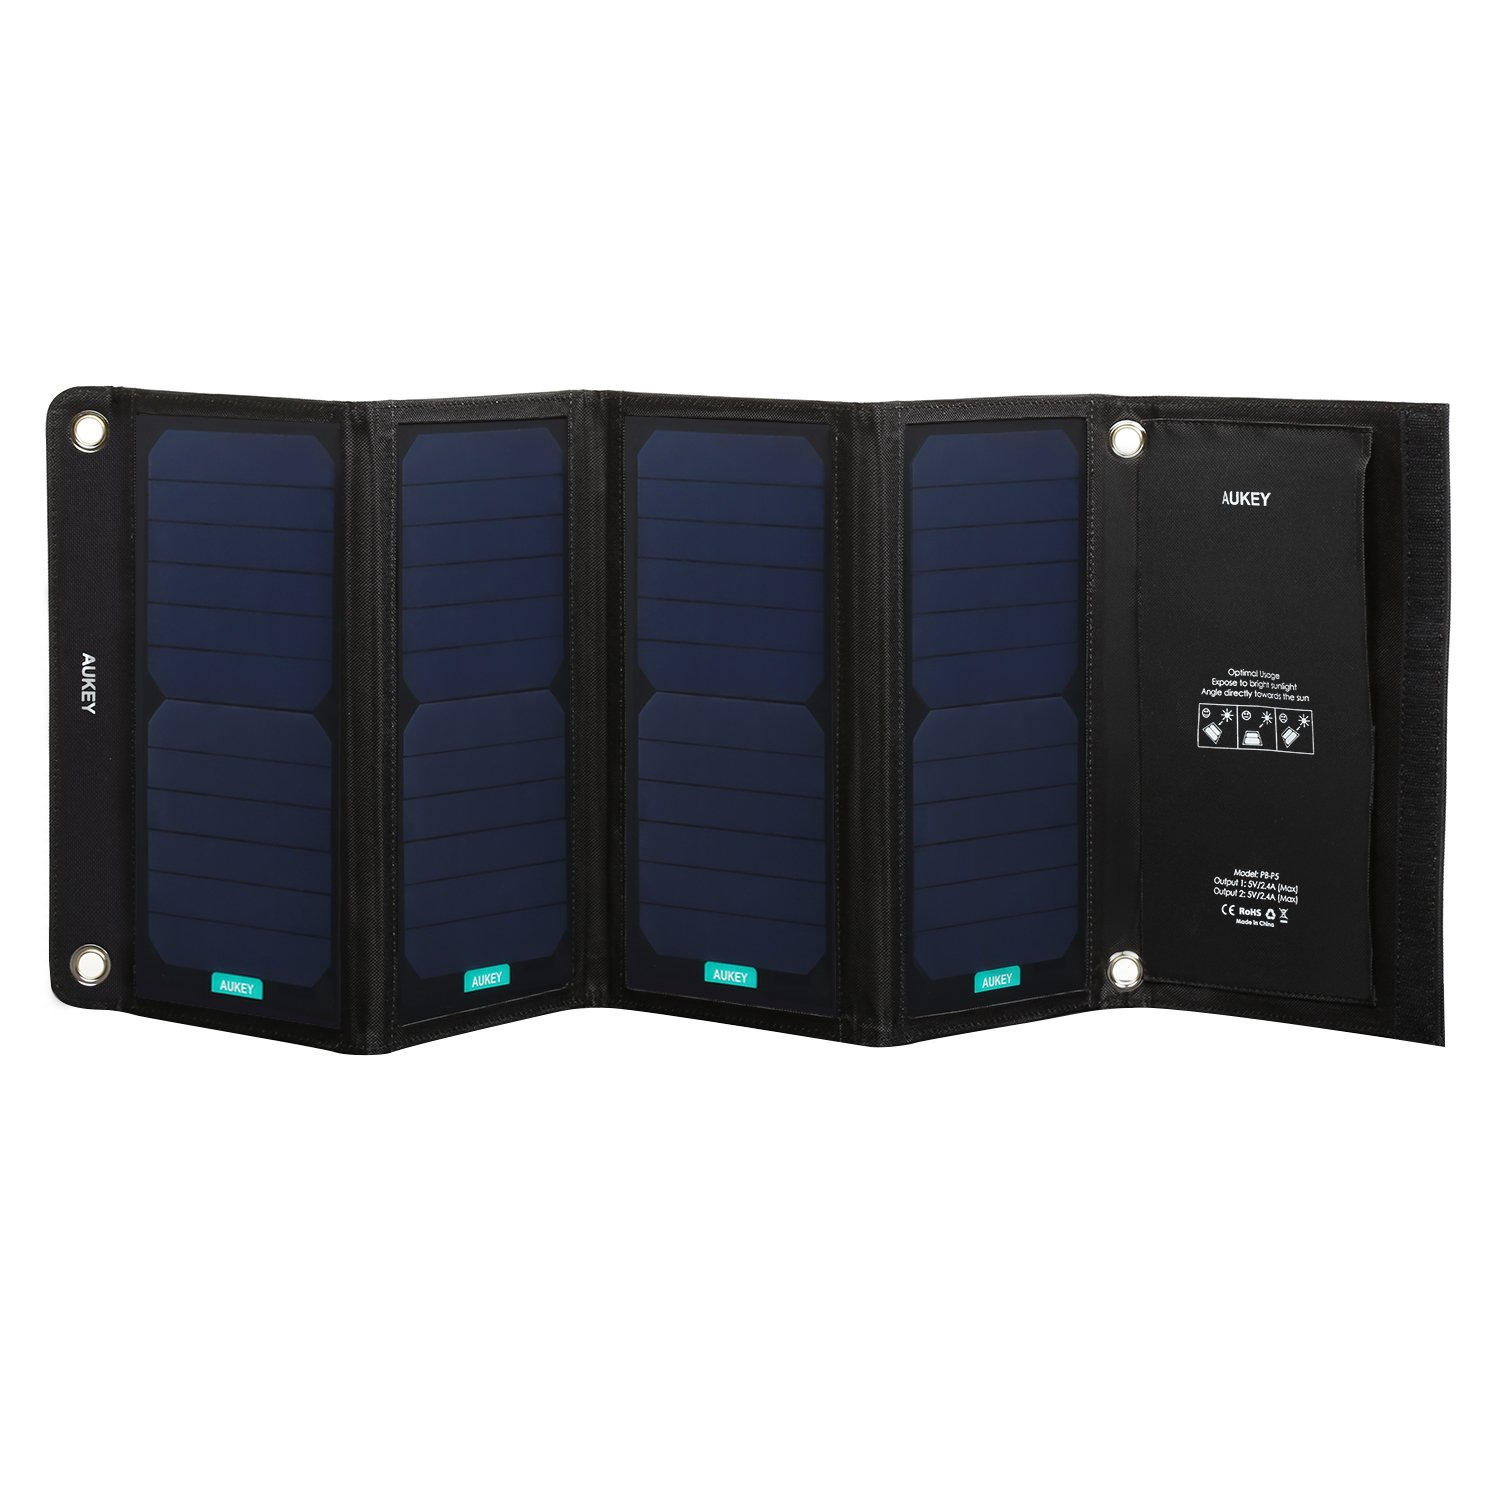 AUKEY 28W Solar Charger with Foldable Design & SunPower High Efficiency Solar Panels for iPhone , iPad, Samsung and More by AUKEY